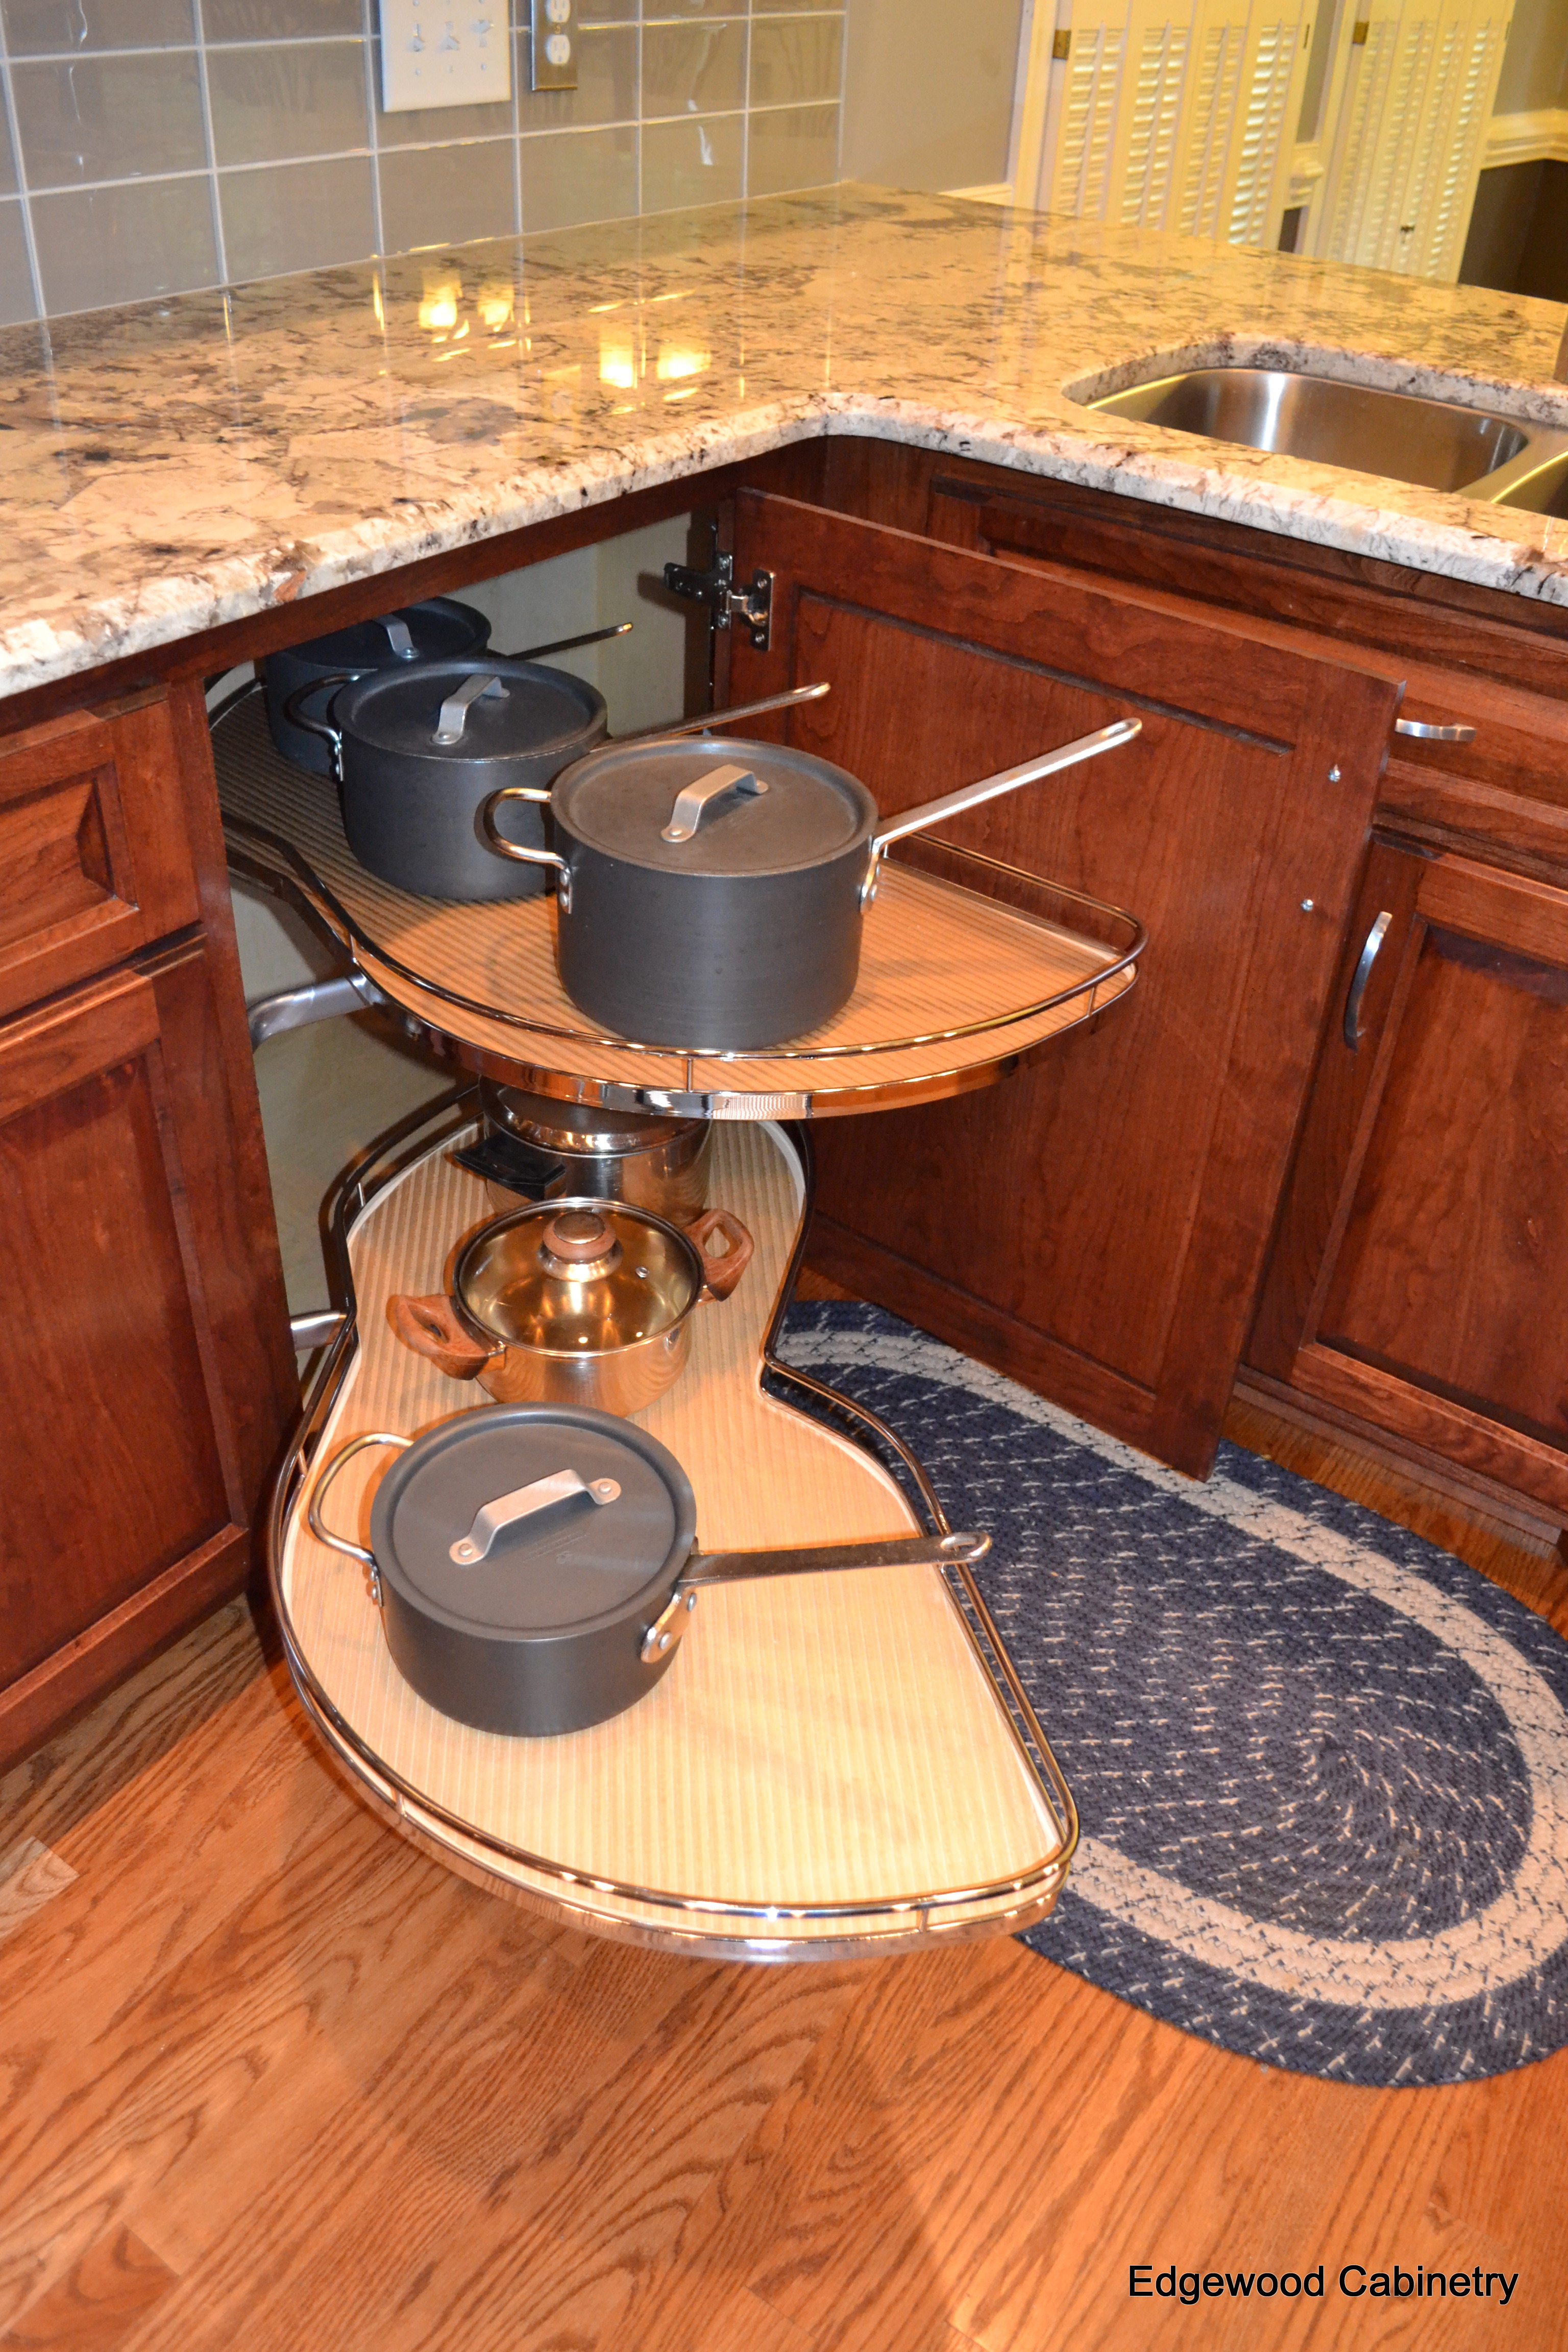 Corner Cabinet Solutions | Edgewood Cabinetry